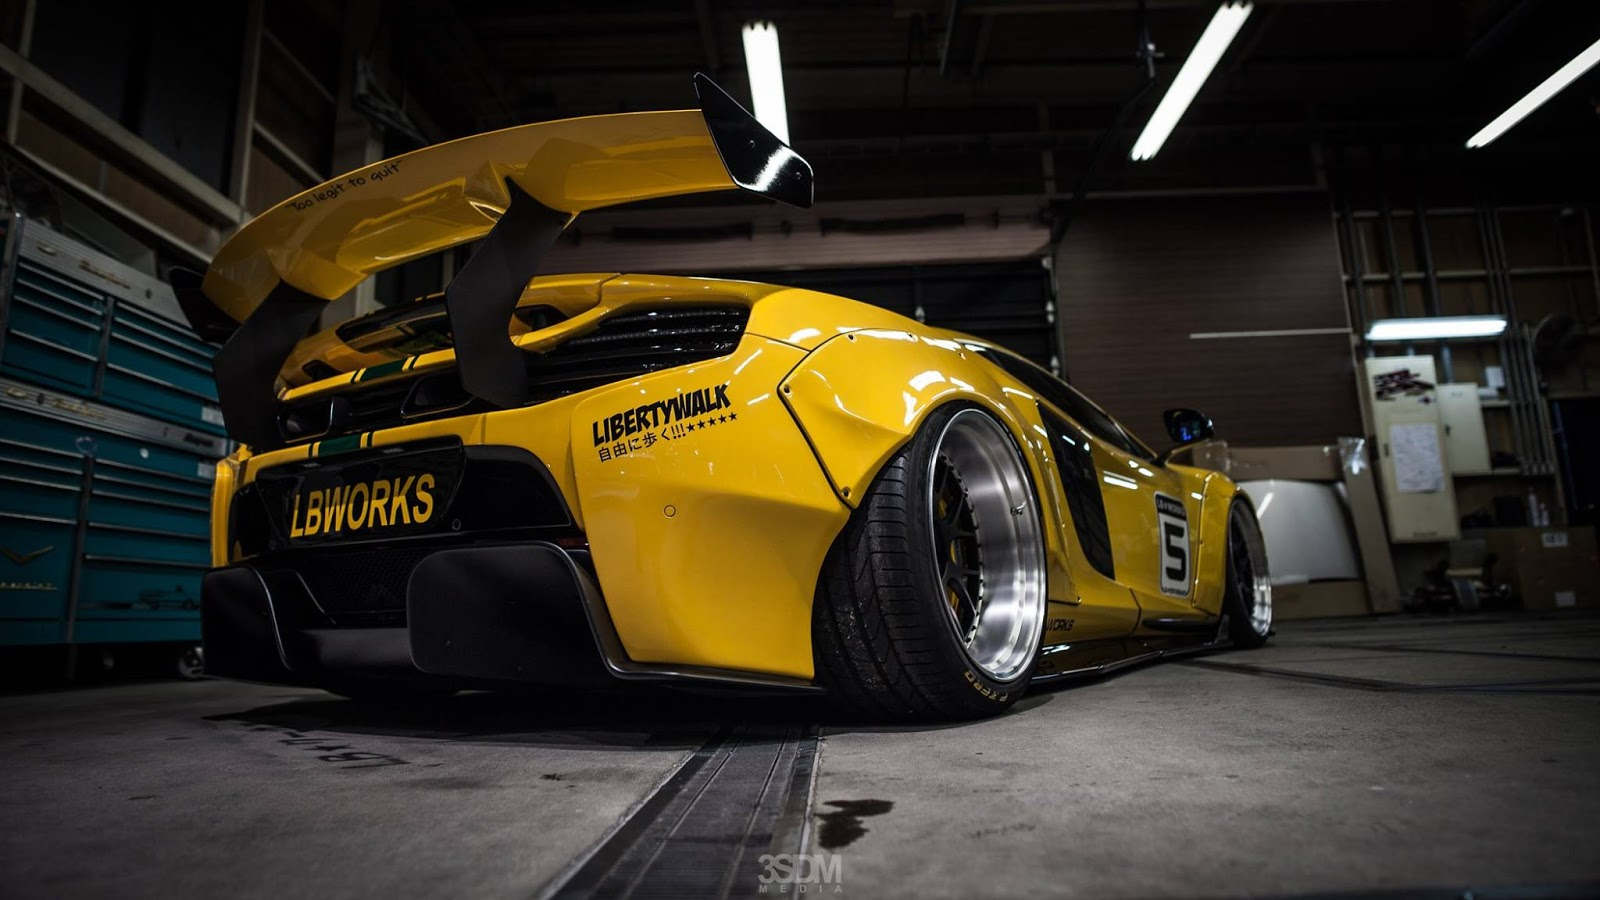 Car Wallpapers Mclaren P1 Liberty Walk Bugatti Veyron Is Not Impossible Autoevolution